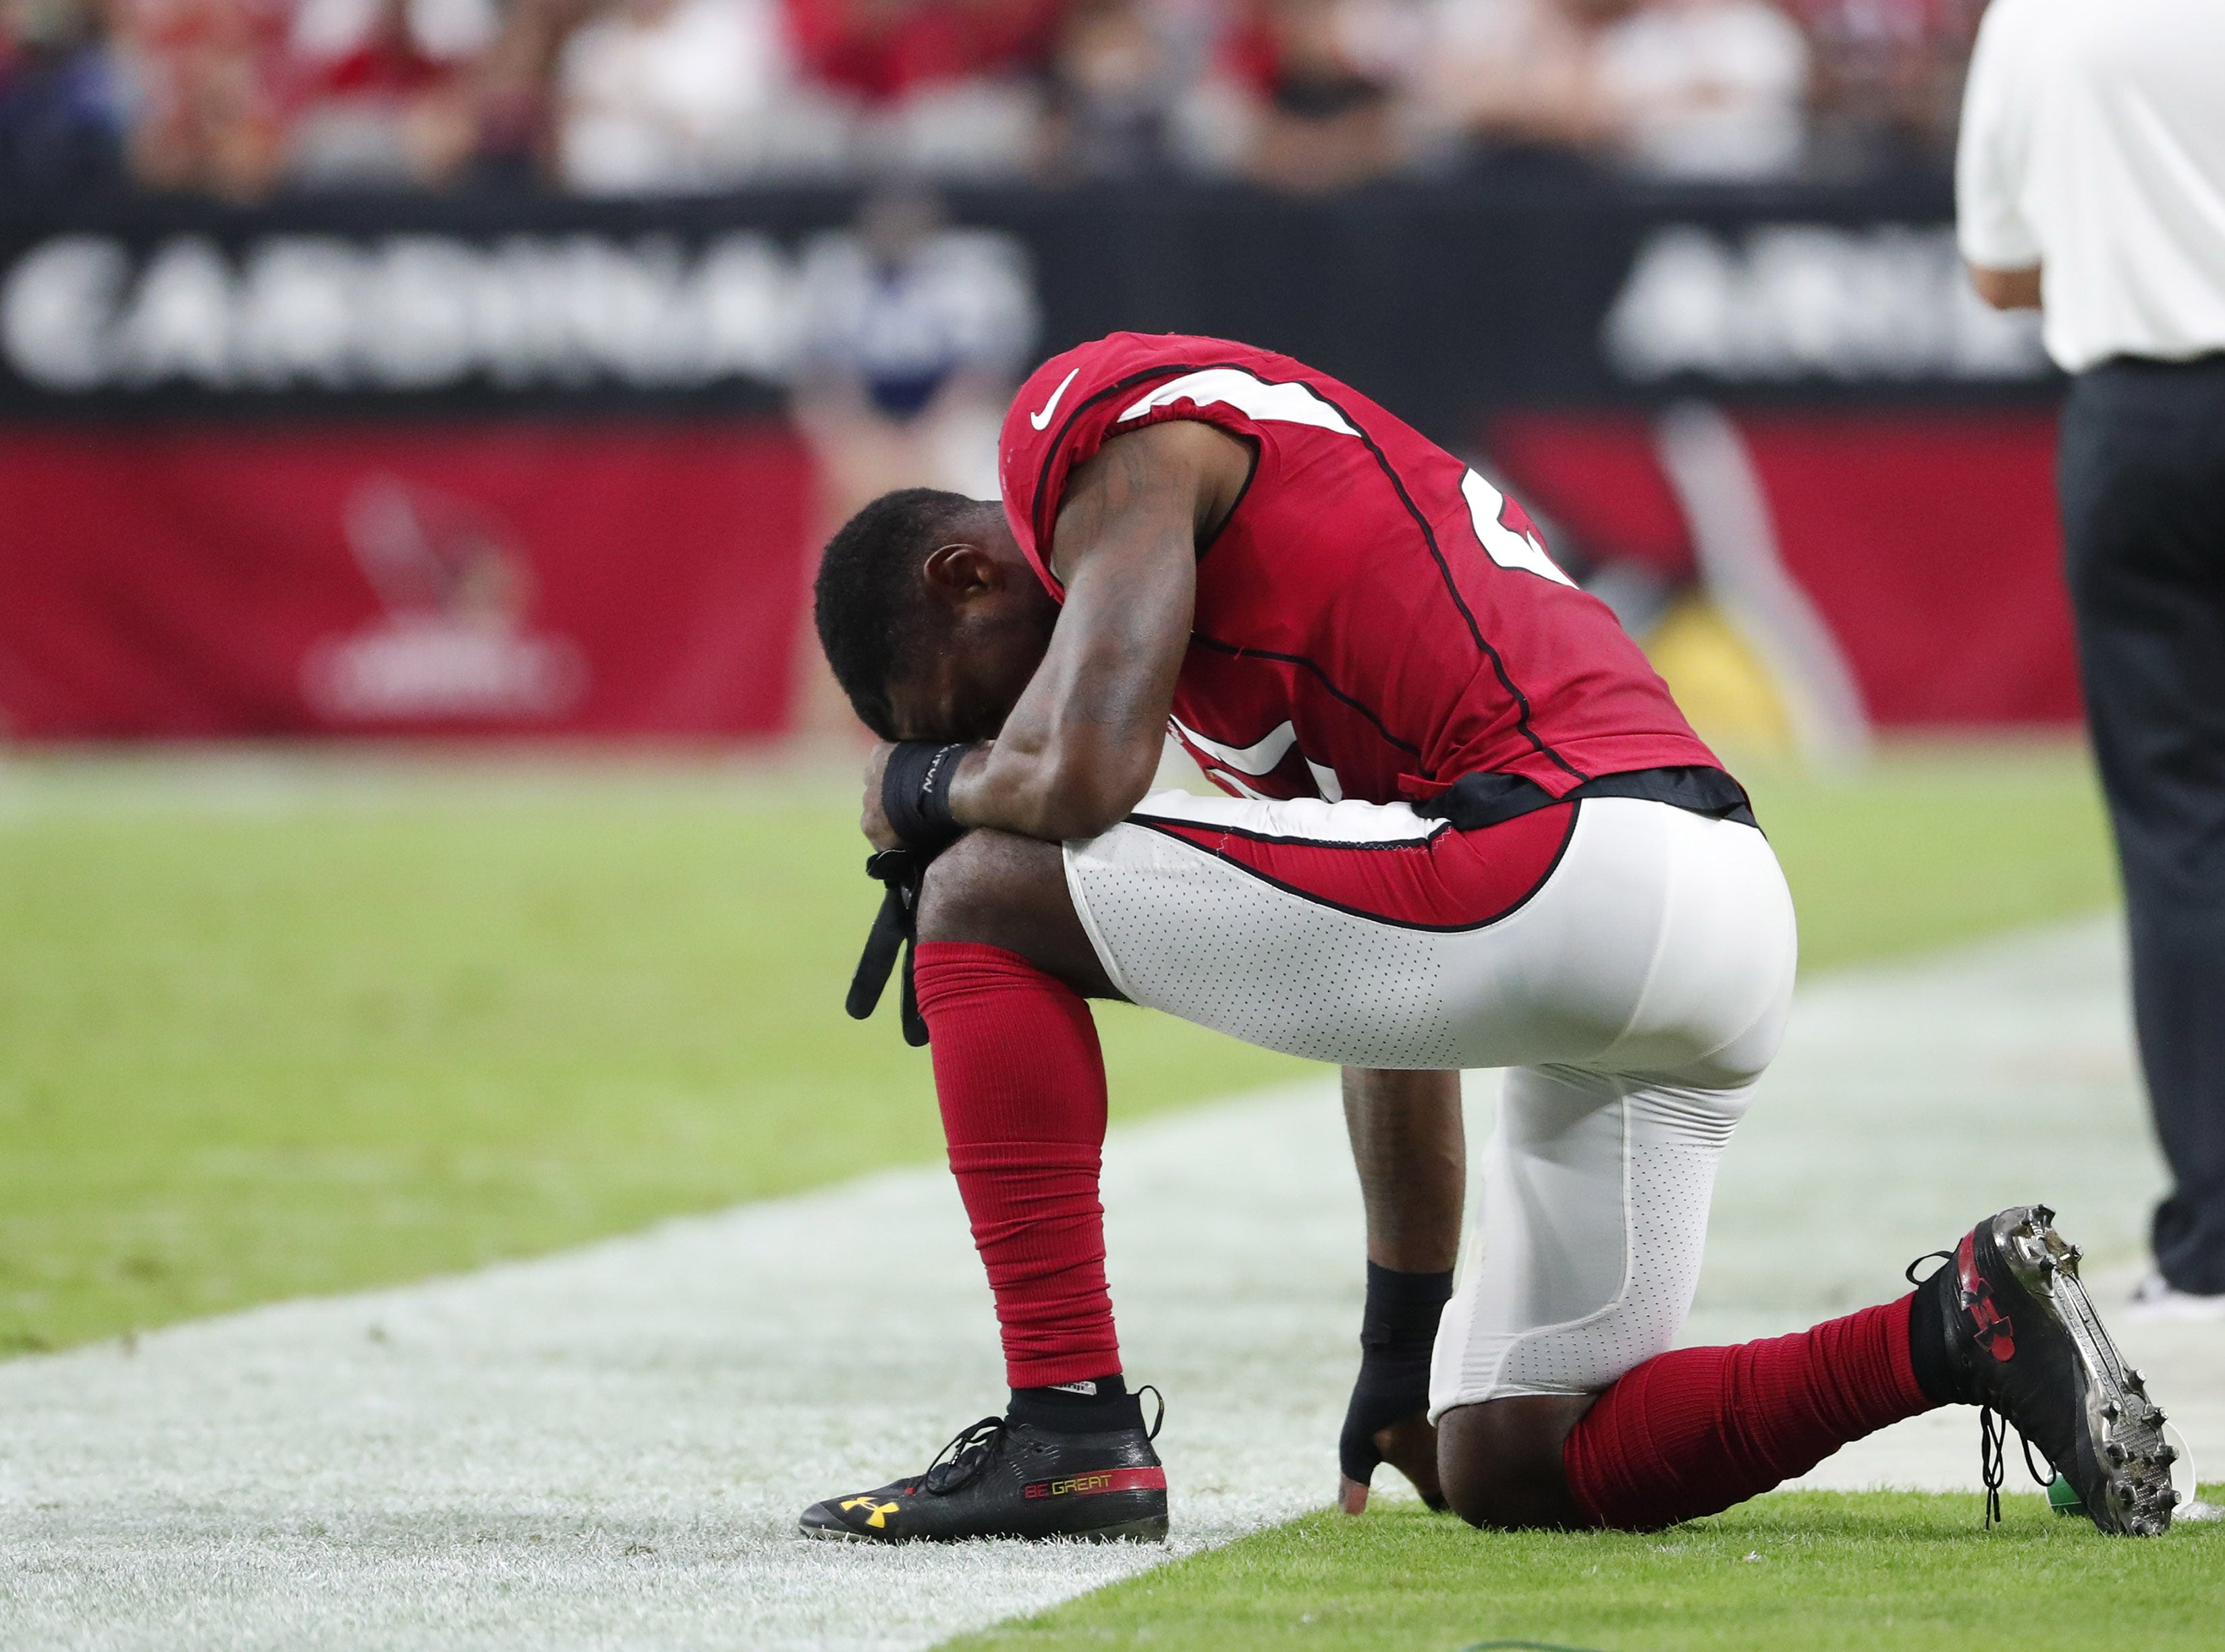 Arizona Cardinals cornerback Patrick Peterson (21) kneels on the sidelines in the fourth quarter during NFL action against the San Francisco 49ers on Oct. 28 at State Farm Stadium.